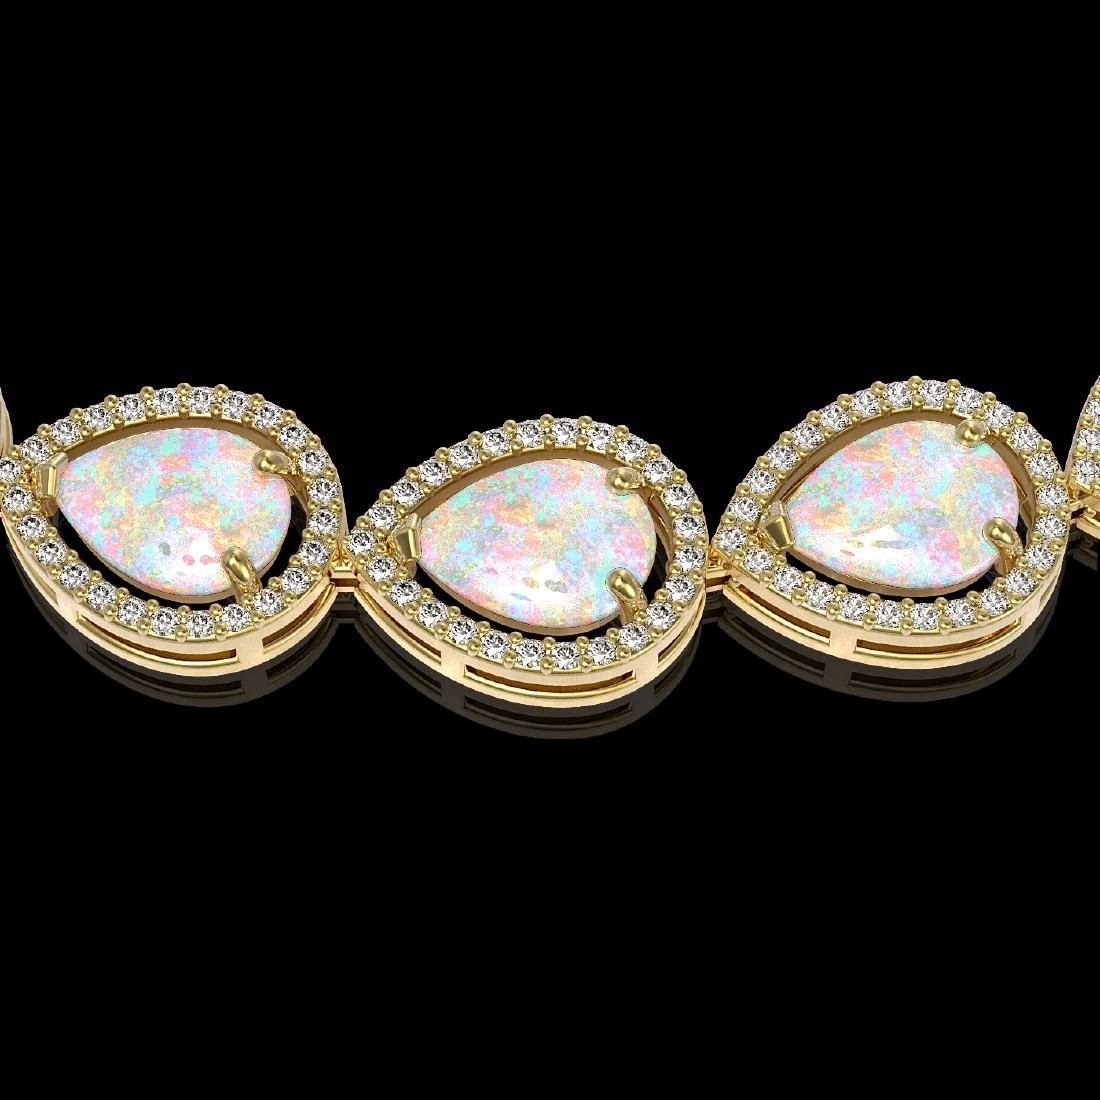 36.48 CTW Opal & Diamond Halo Necklace 10K Yellow Gold - 3